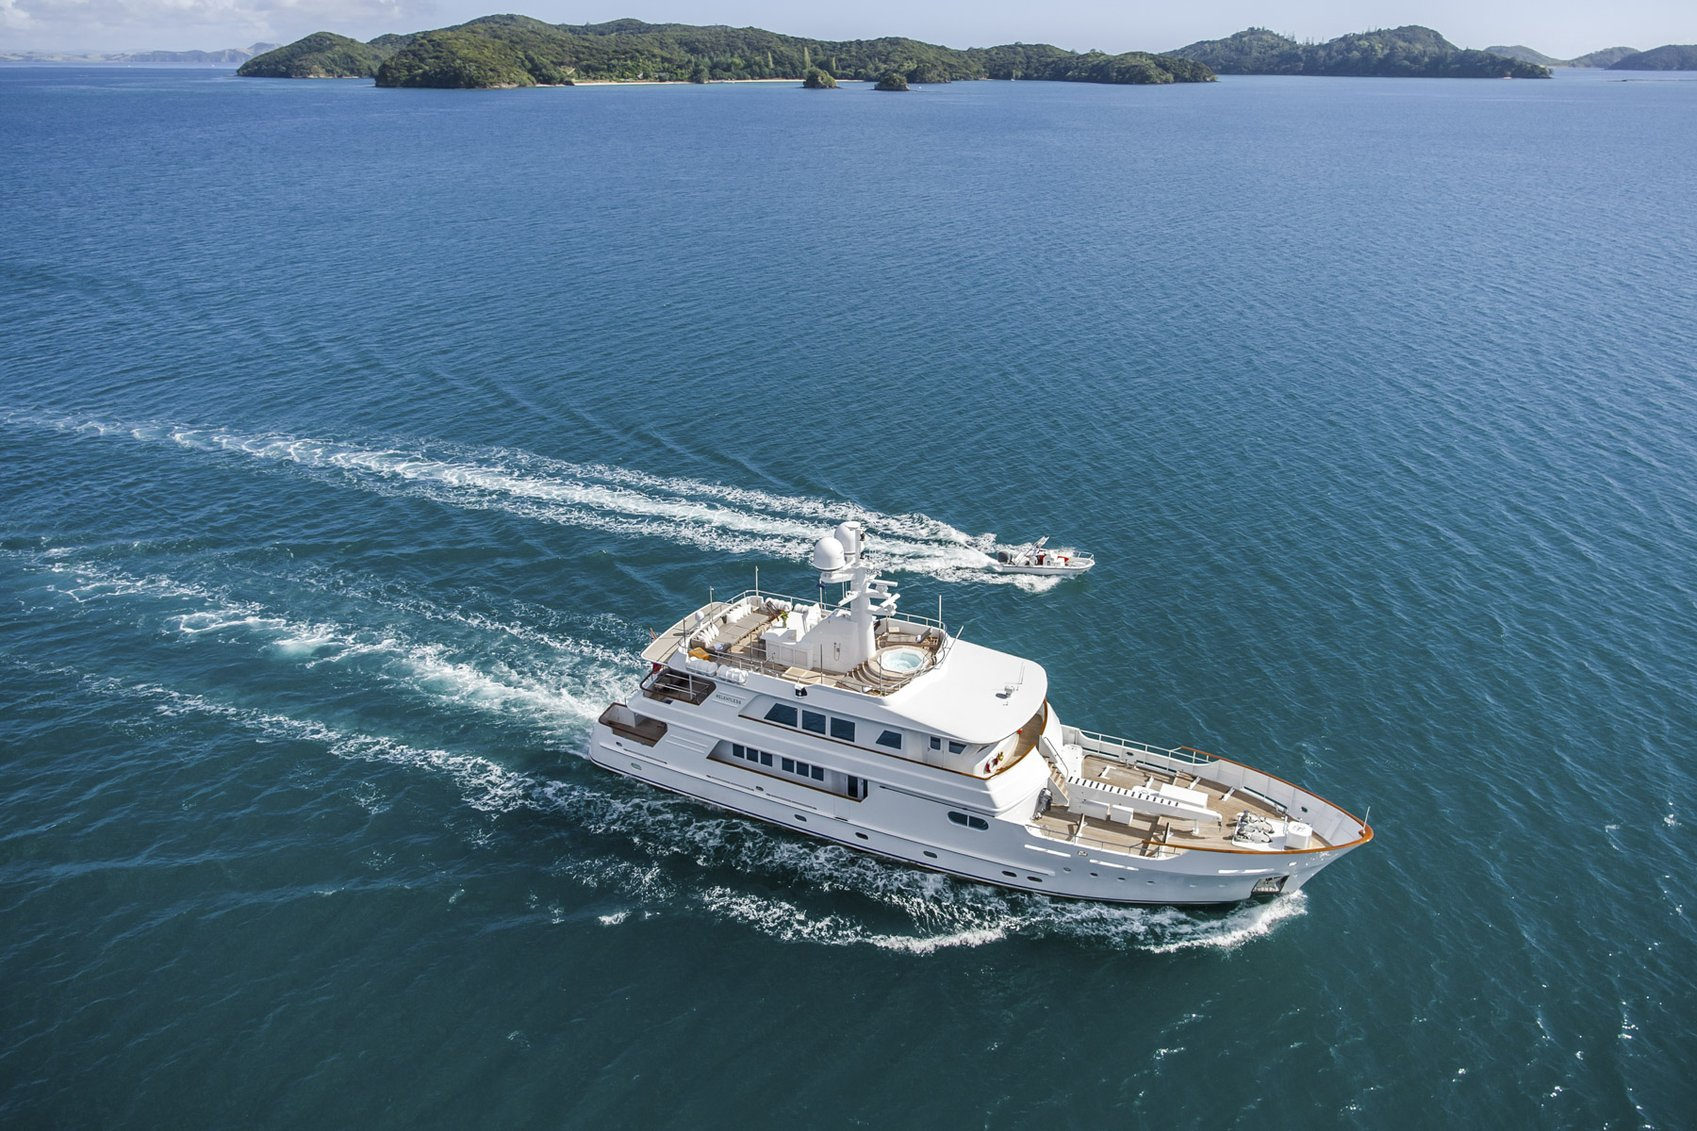 expedition yacht RELENTLESS cruising on a South Pacific yacht charter